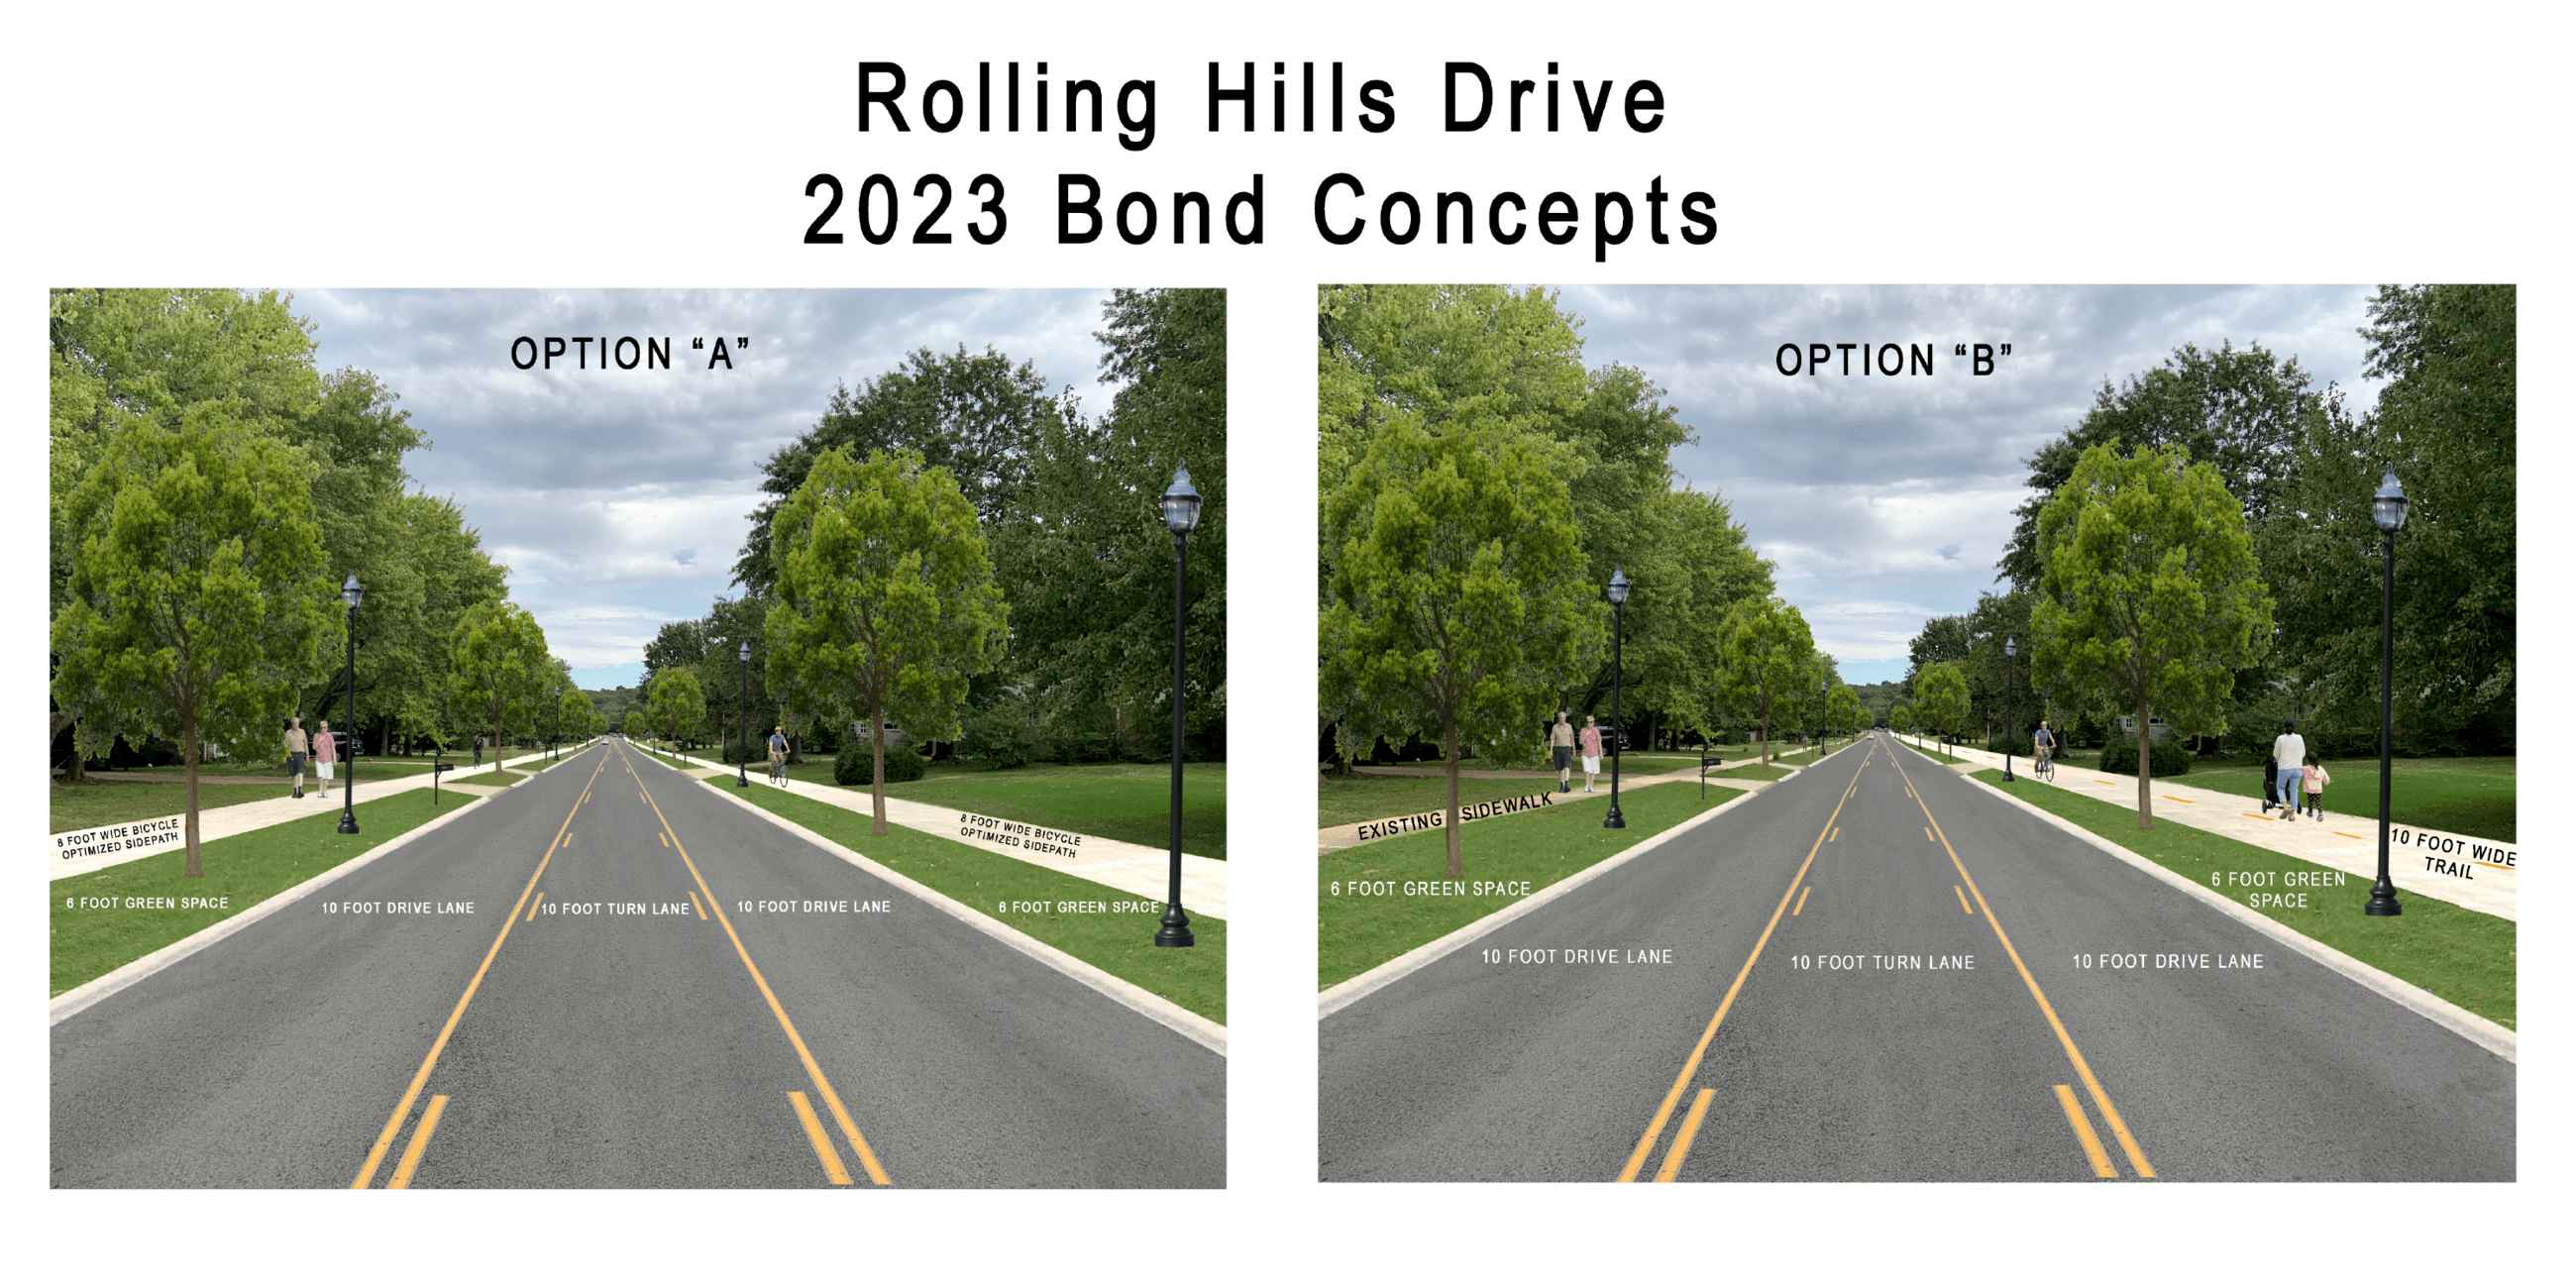 Image of two street cross-section options side by side